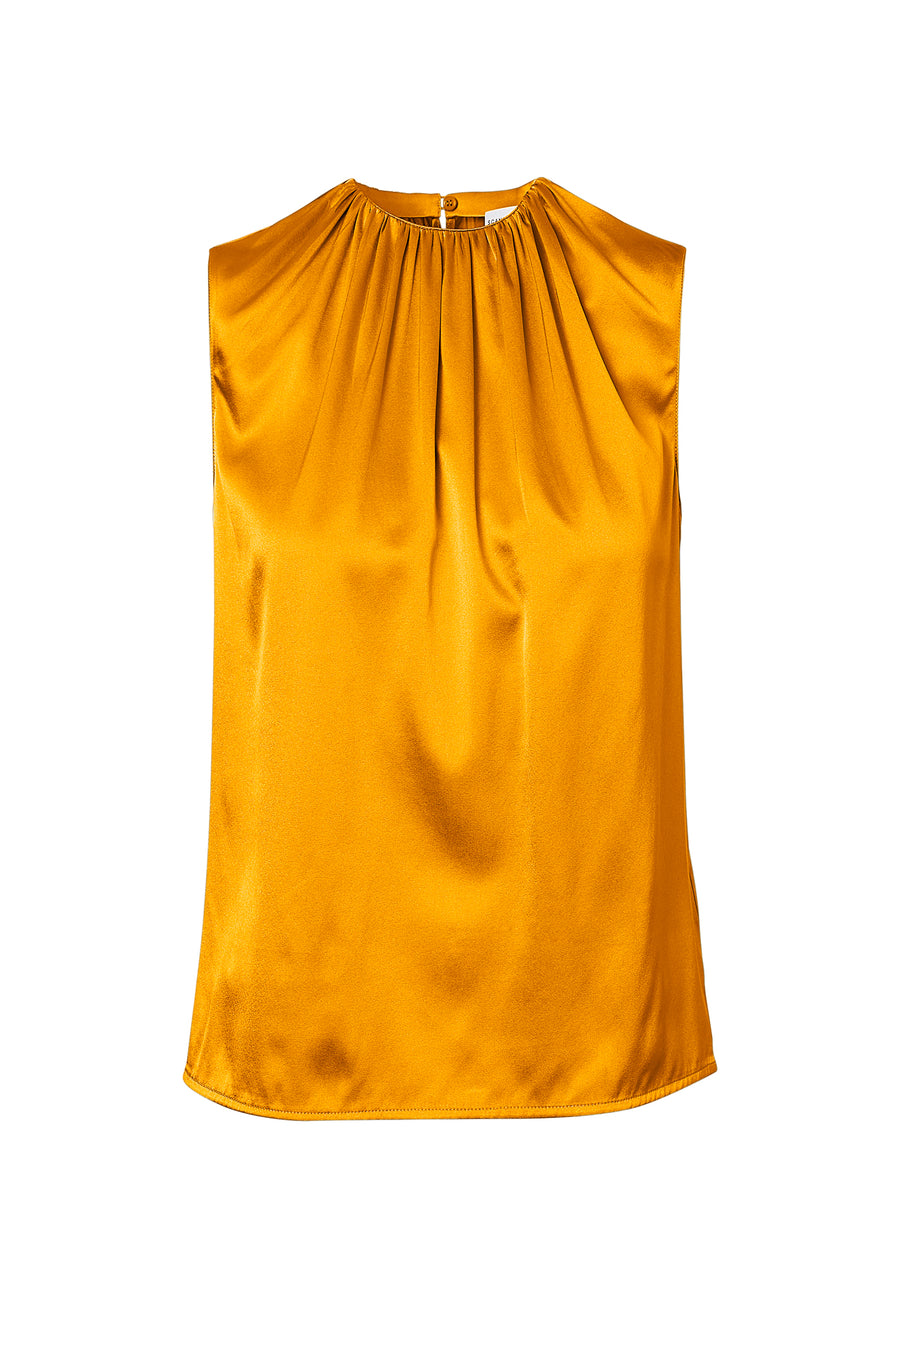 Silk Satin Tank, cut on the bias, soft drape with a slightly loose silhouette, High Neck, Color Boulevard